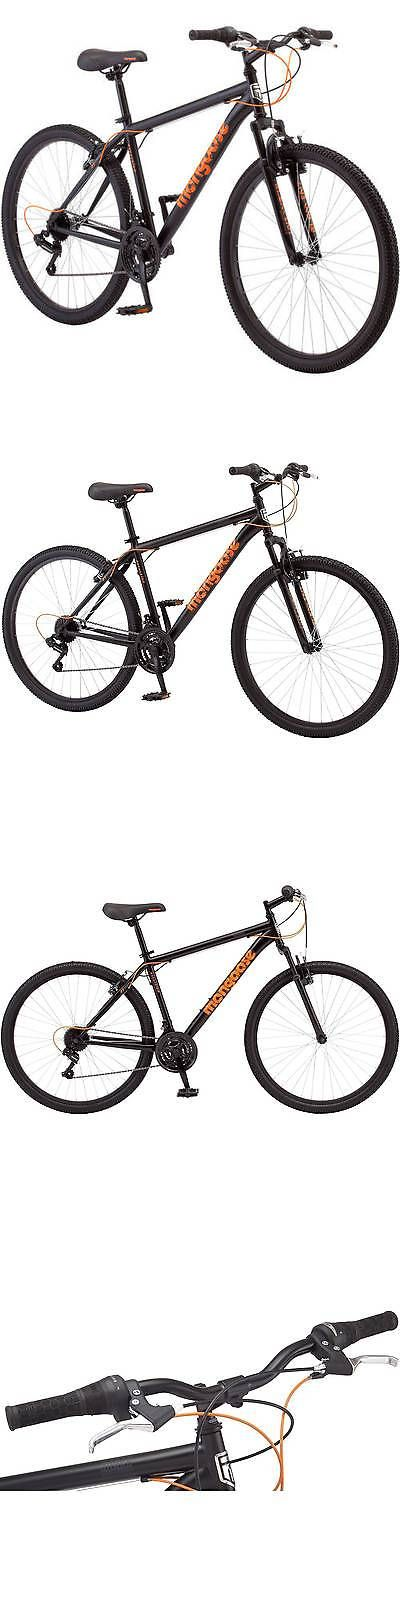 Bicycles 177831: 27.5 Mongoose Excursion Men S Mountain Bike -> BUY IT NOW ONLY: $146.23 on eBay!